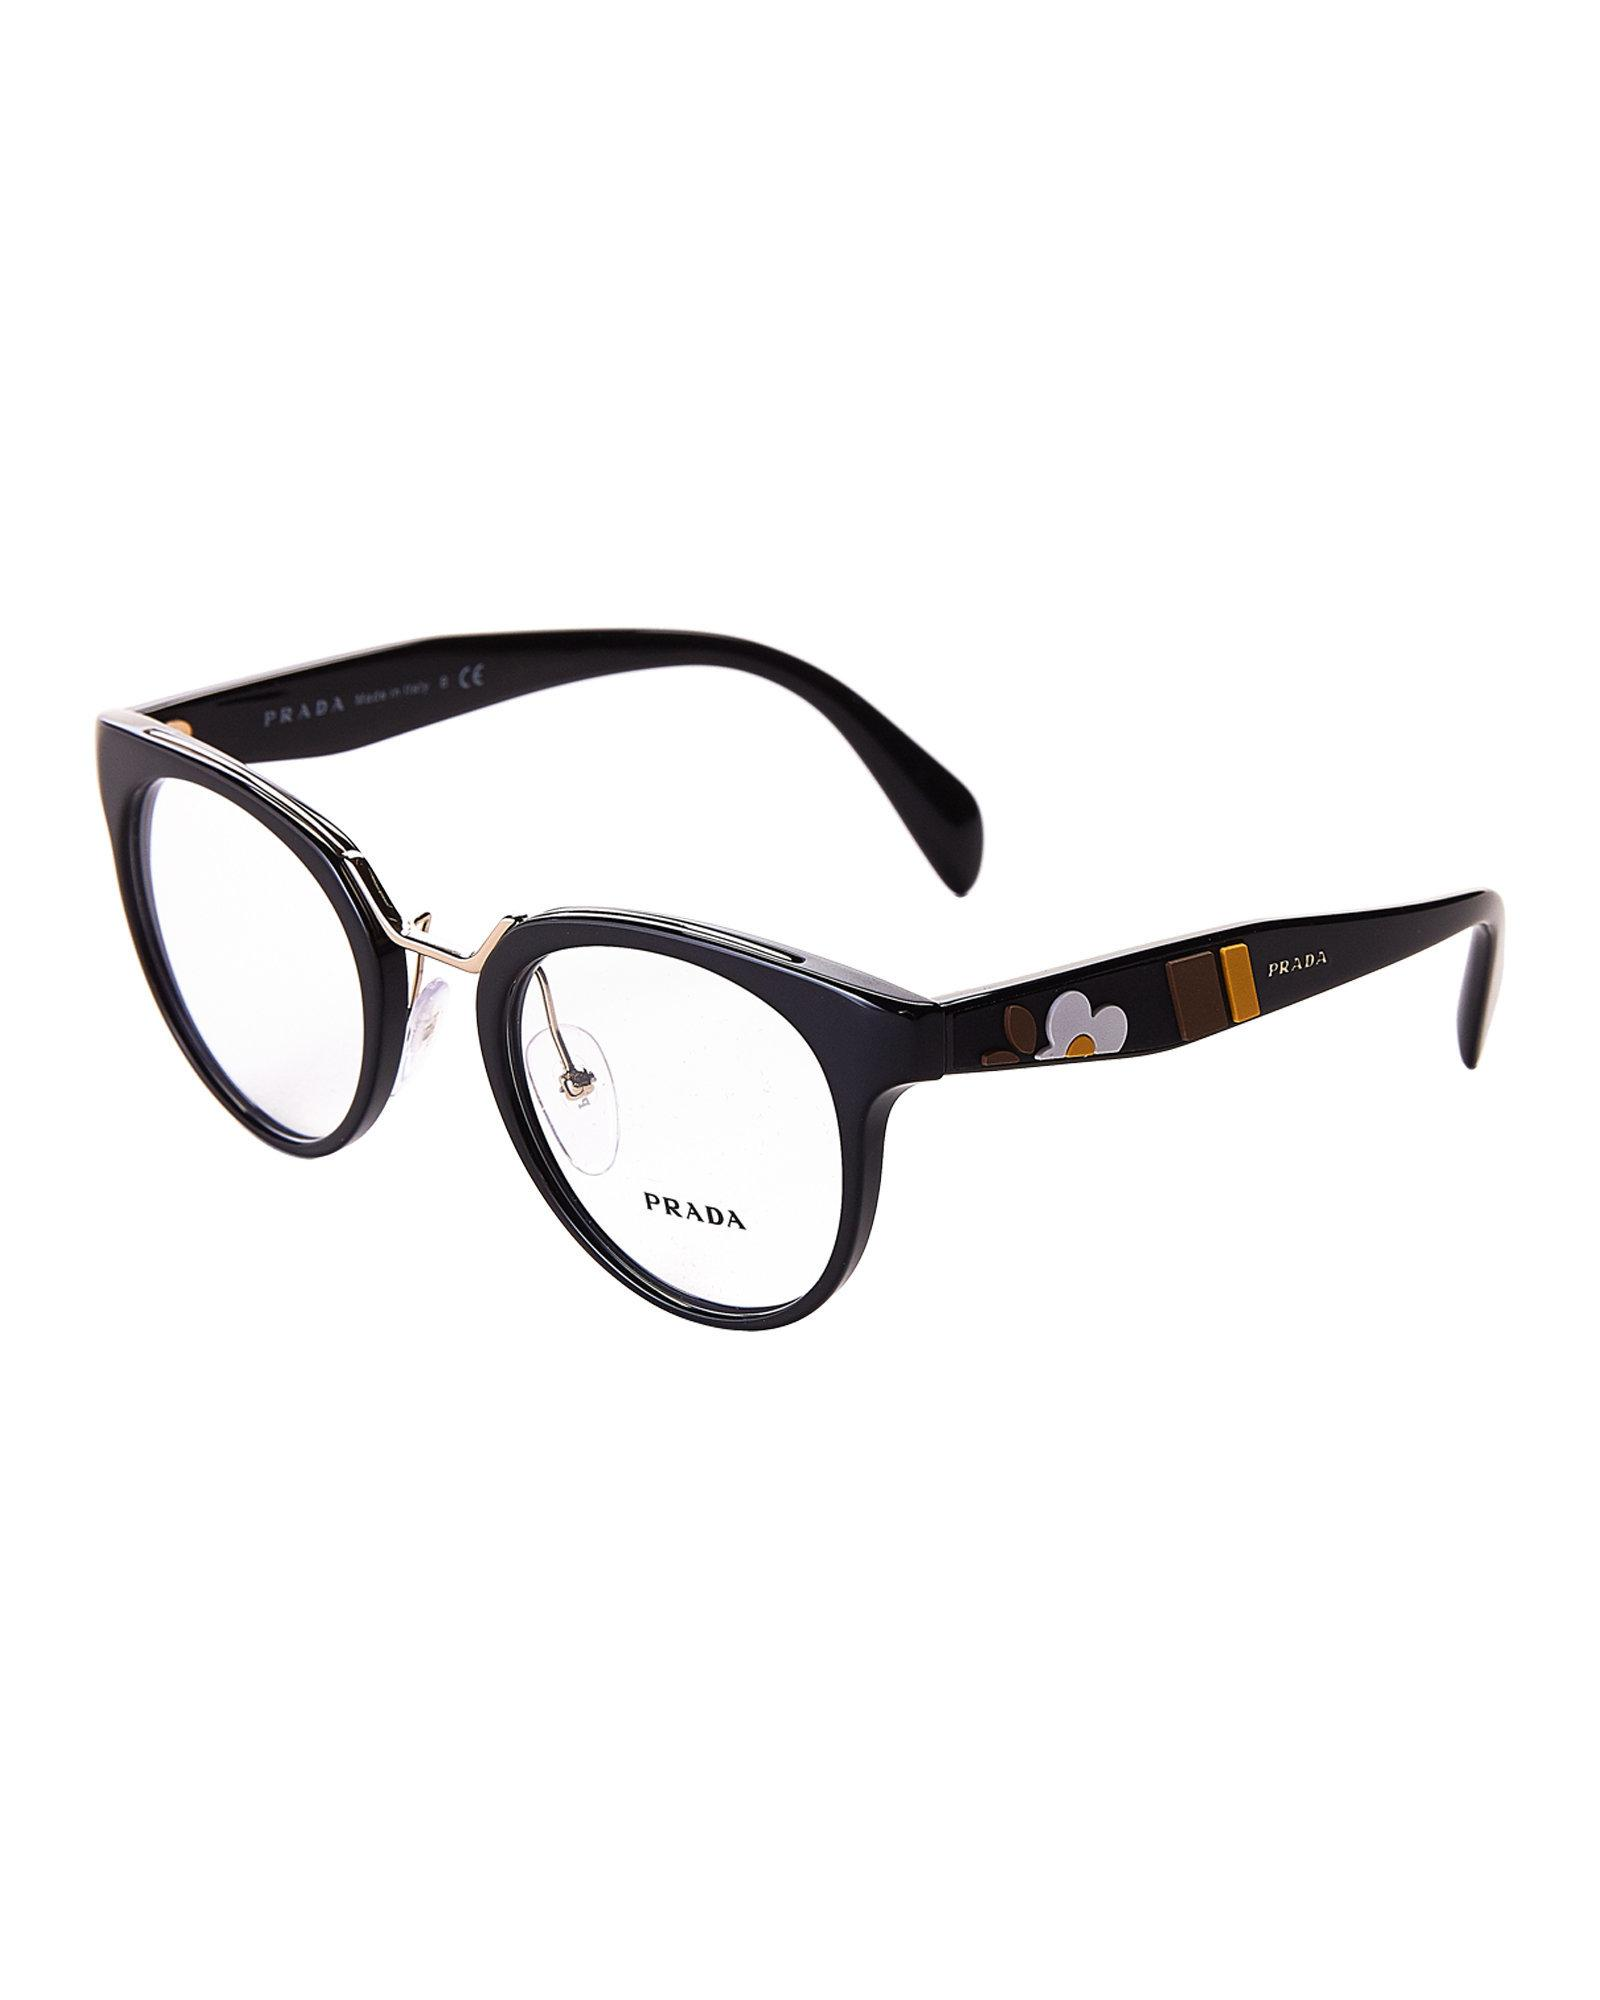 e4480656f27 Lyst - Prada Vpr 03u Black Flower Round Optical Frames in Black